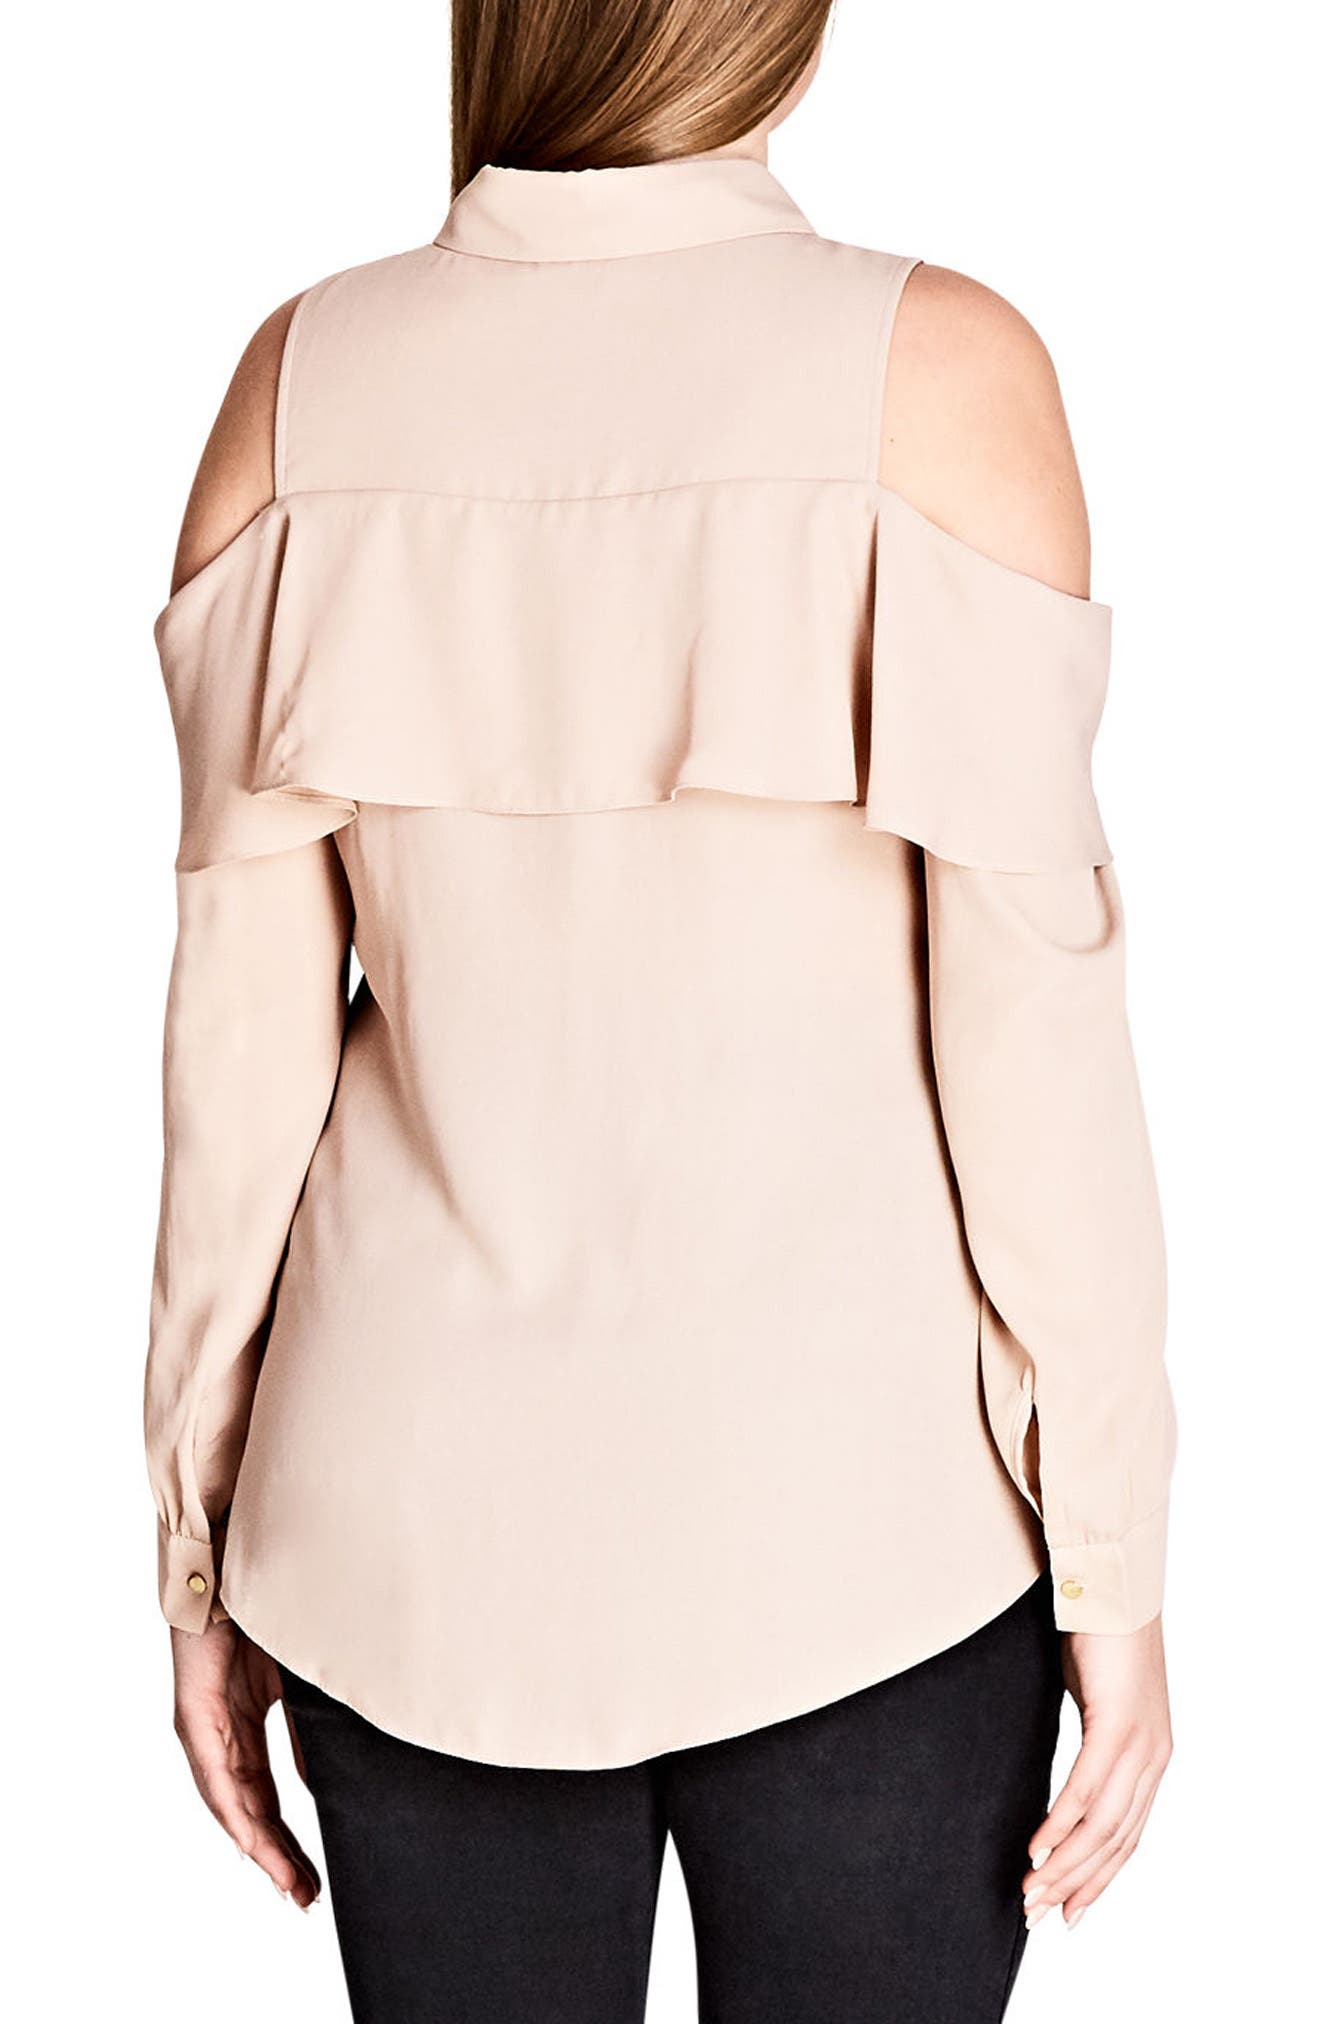 Alternate Image 2  - City Chic Frill Cold Shoulder Shirt (Plus Size)